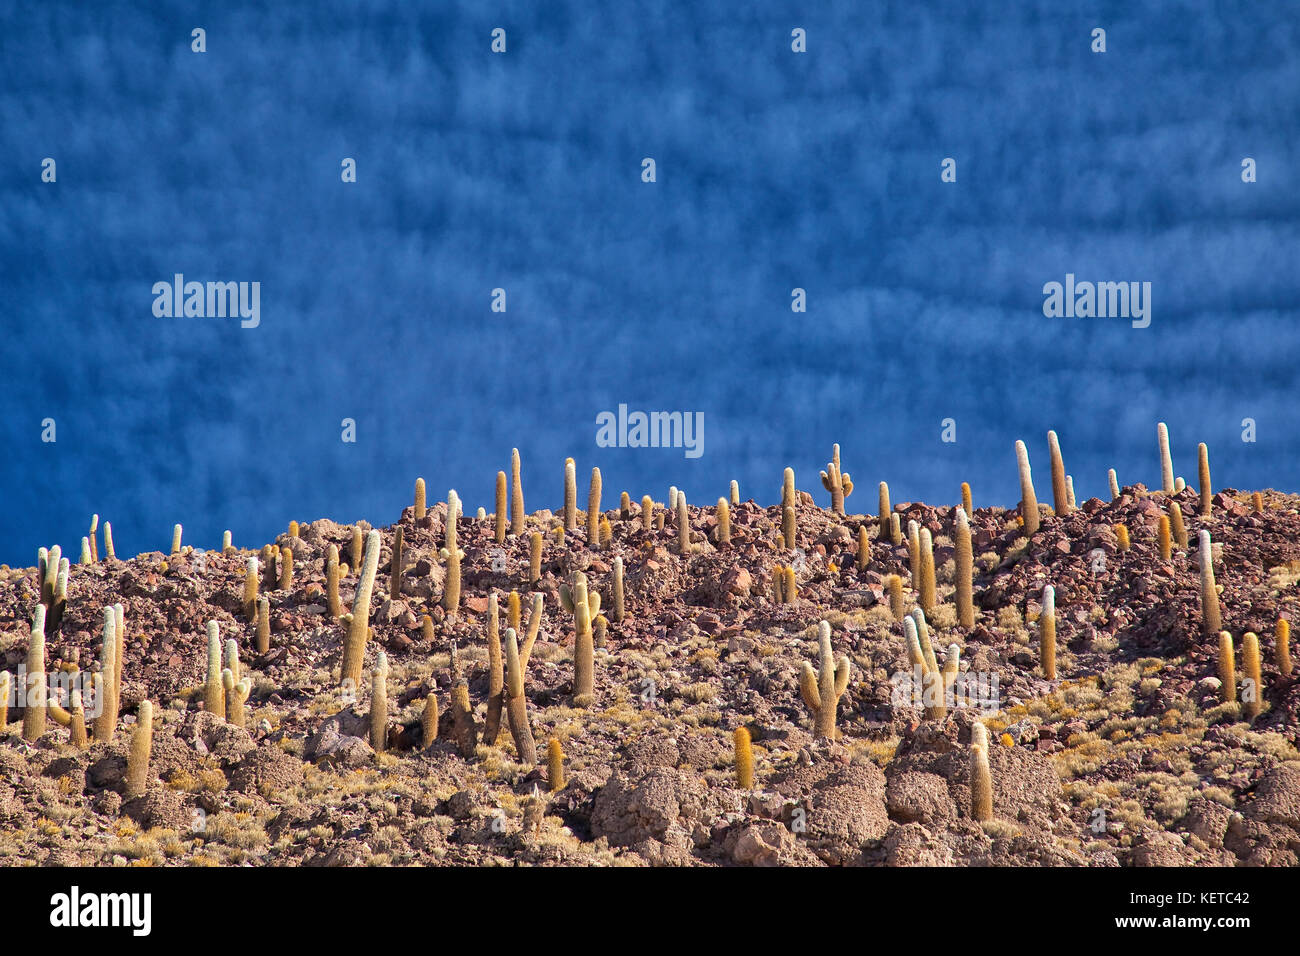 Cactus on hills and rocks of the Isla Incahuasi located in the Salar de Uyuni South Lipez Bolivia South America - Stock Image